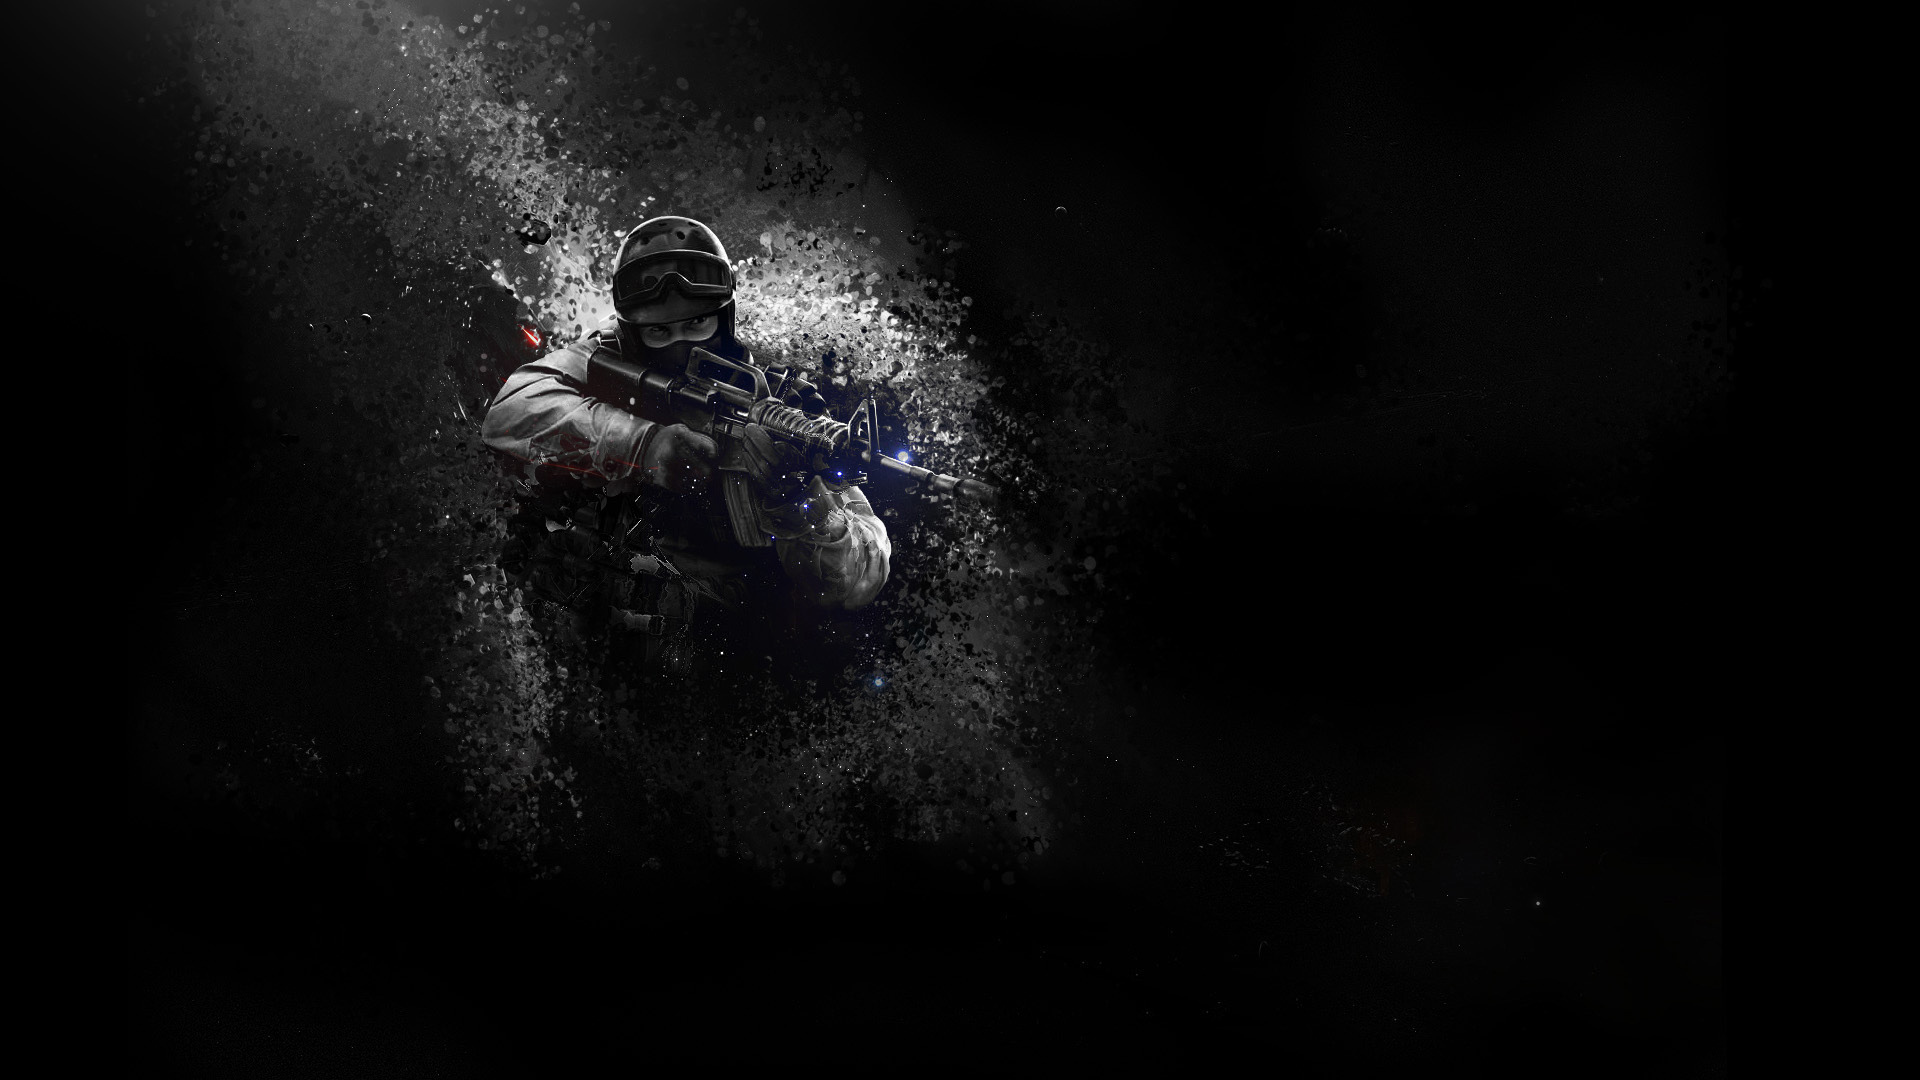 CS GO Wallpaper HD - WallpaperSafari Counter Strike Wallpaper Hd